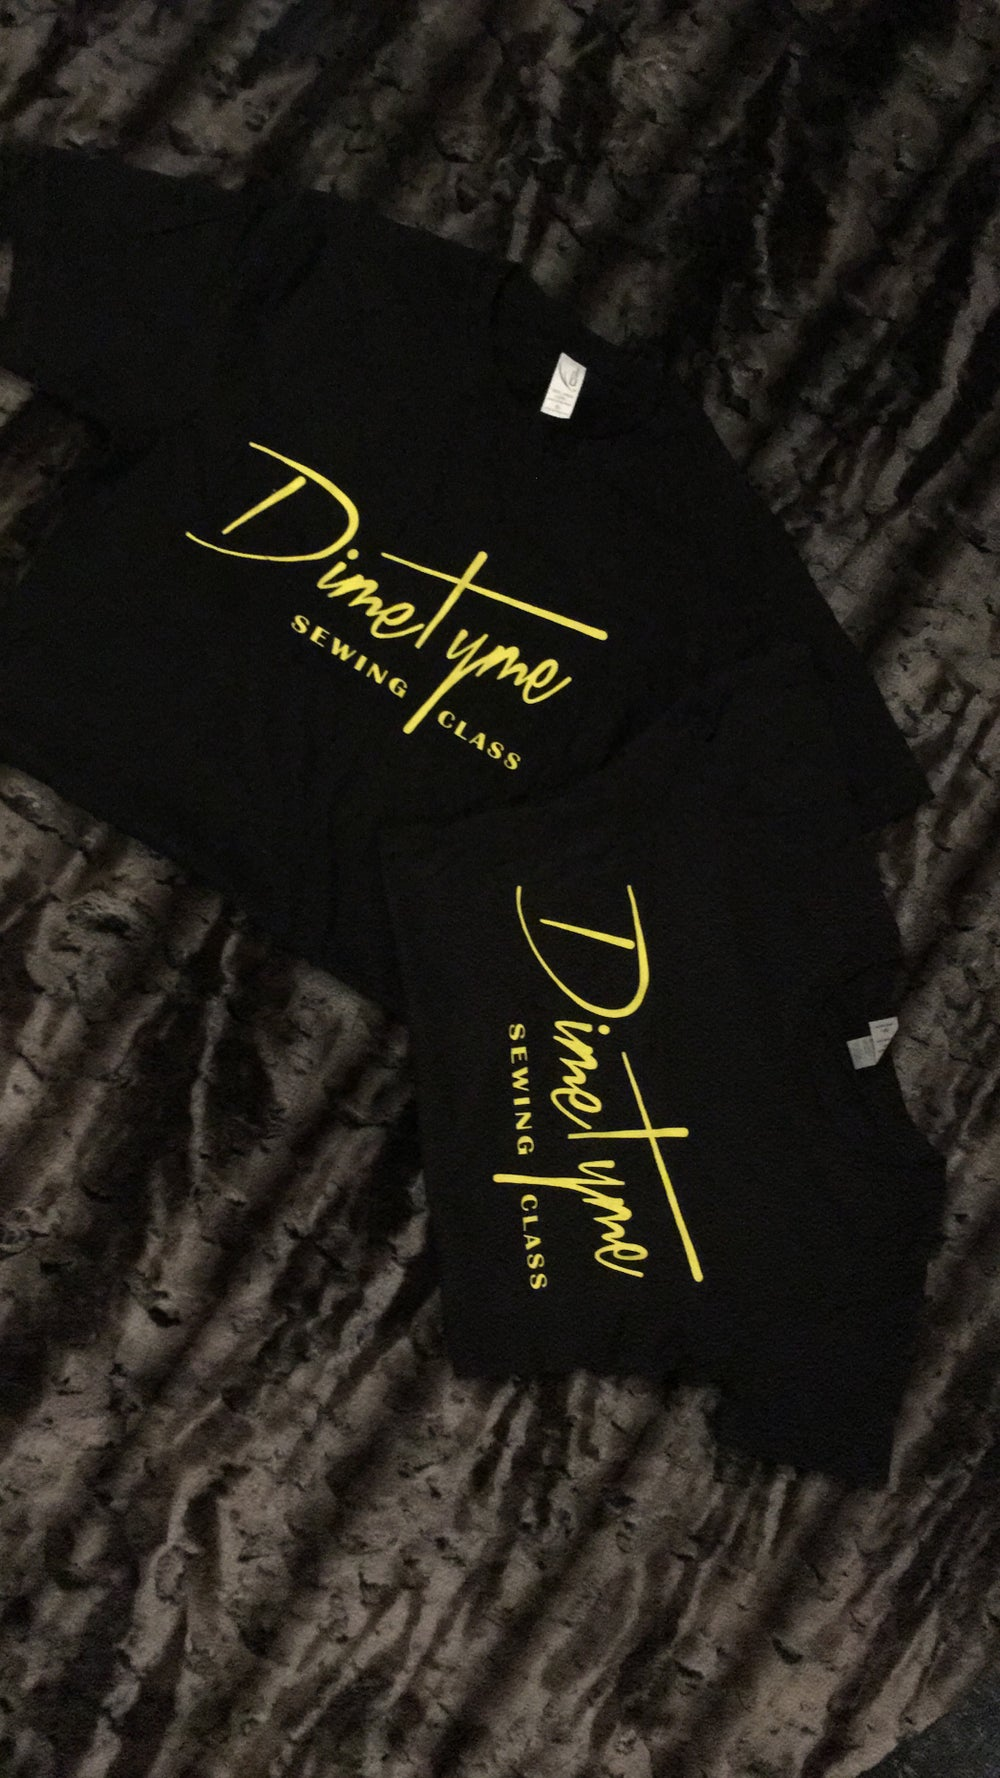 Image of DimeTyme Sewing Class Tee